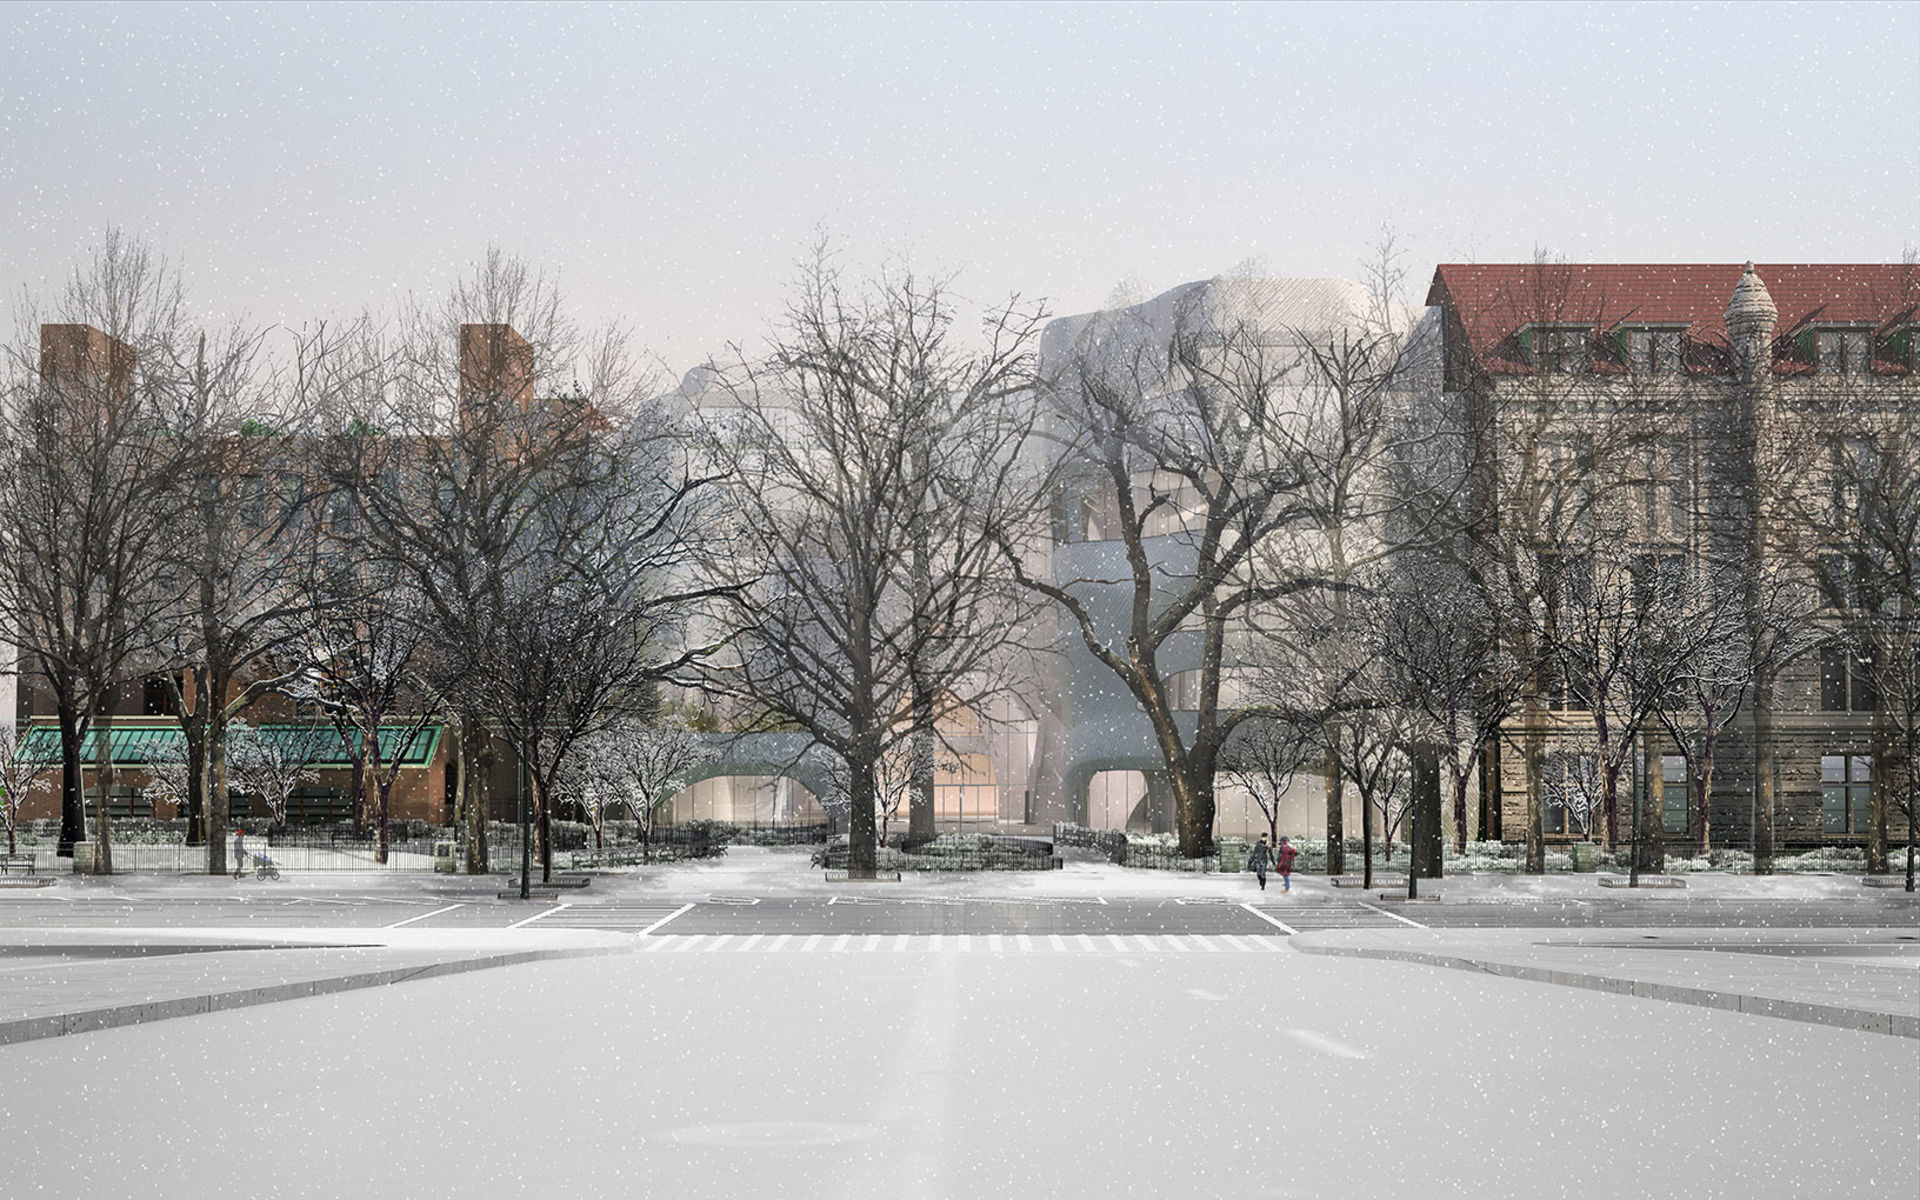 Rendering of the front facade of the Gilder addition (flanked by older museum buildings on either side) during winter, with leafless trees and snow.